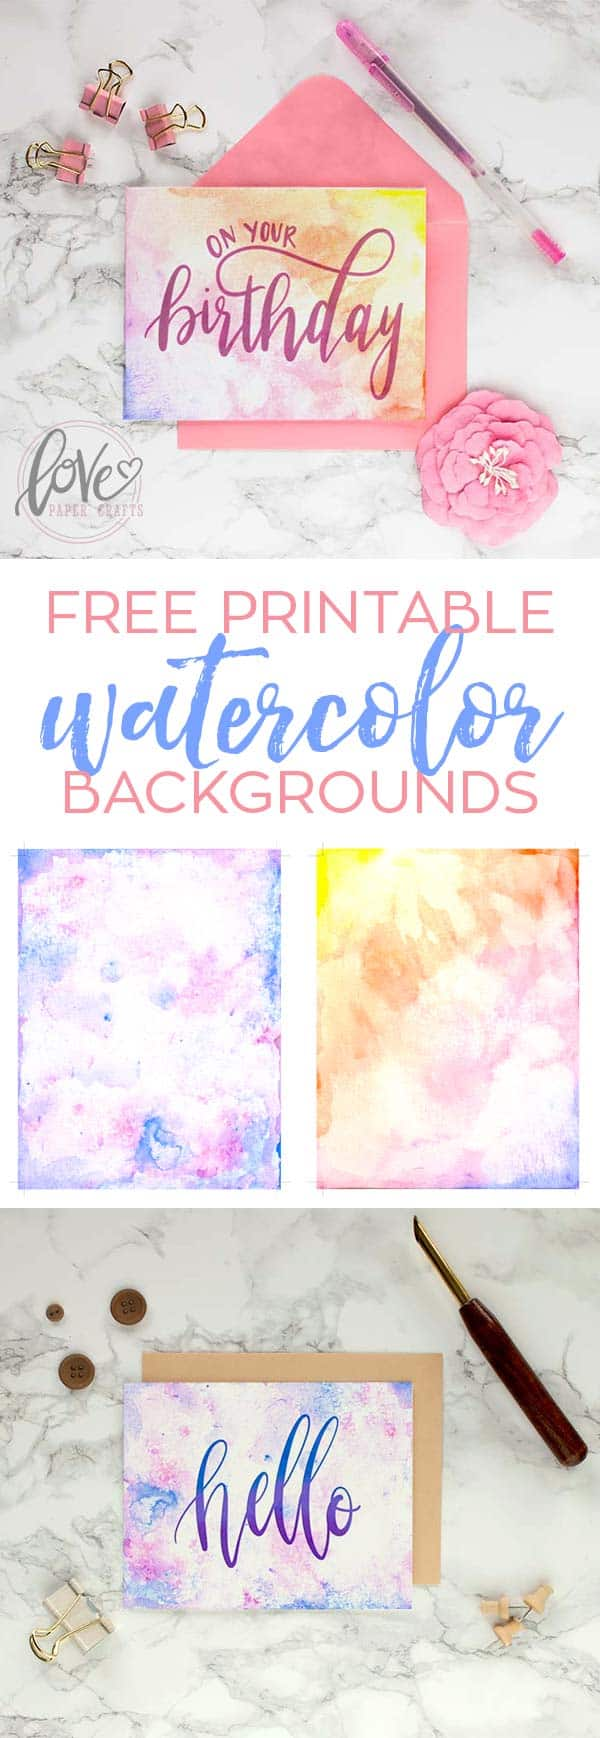 photograph regarding Printable Textures named Printable Watercolor Card Backgrounds - Enjoy Paper Crafts